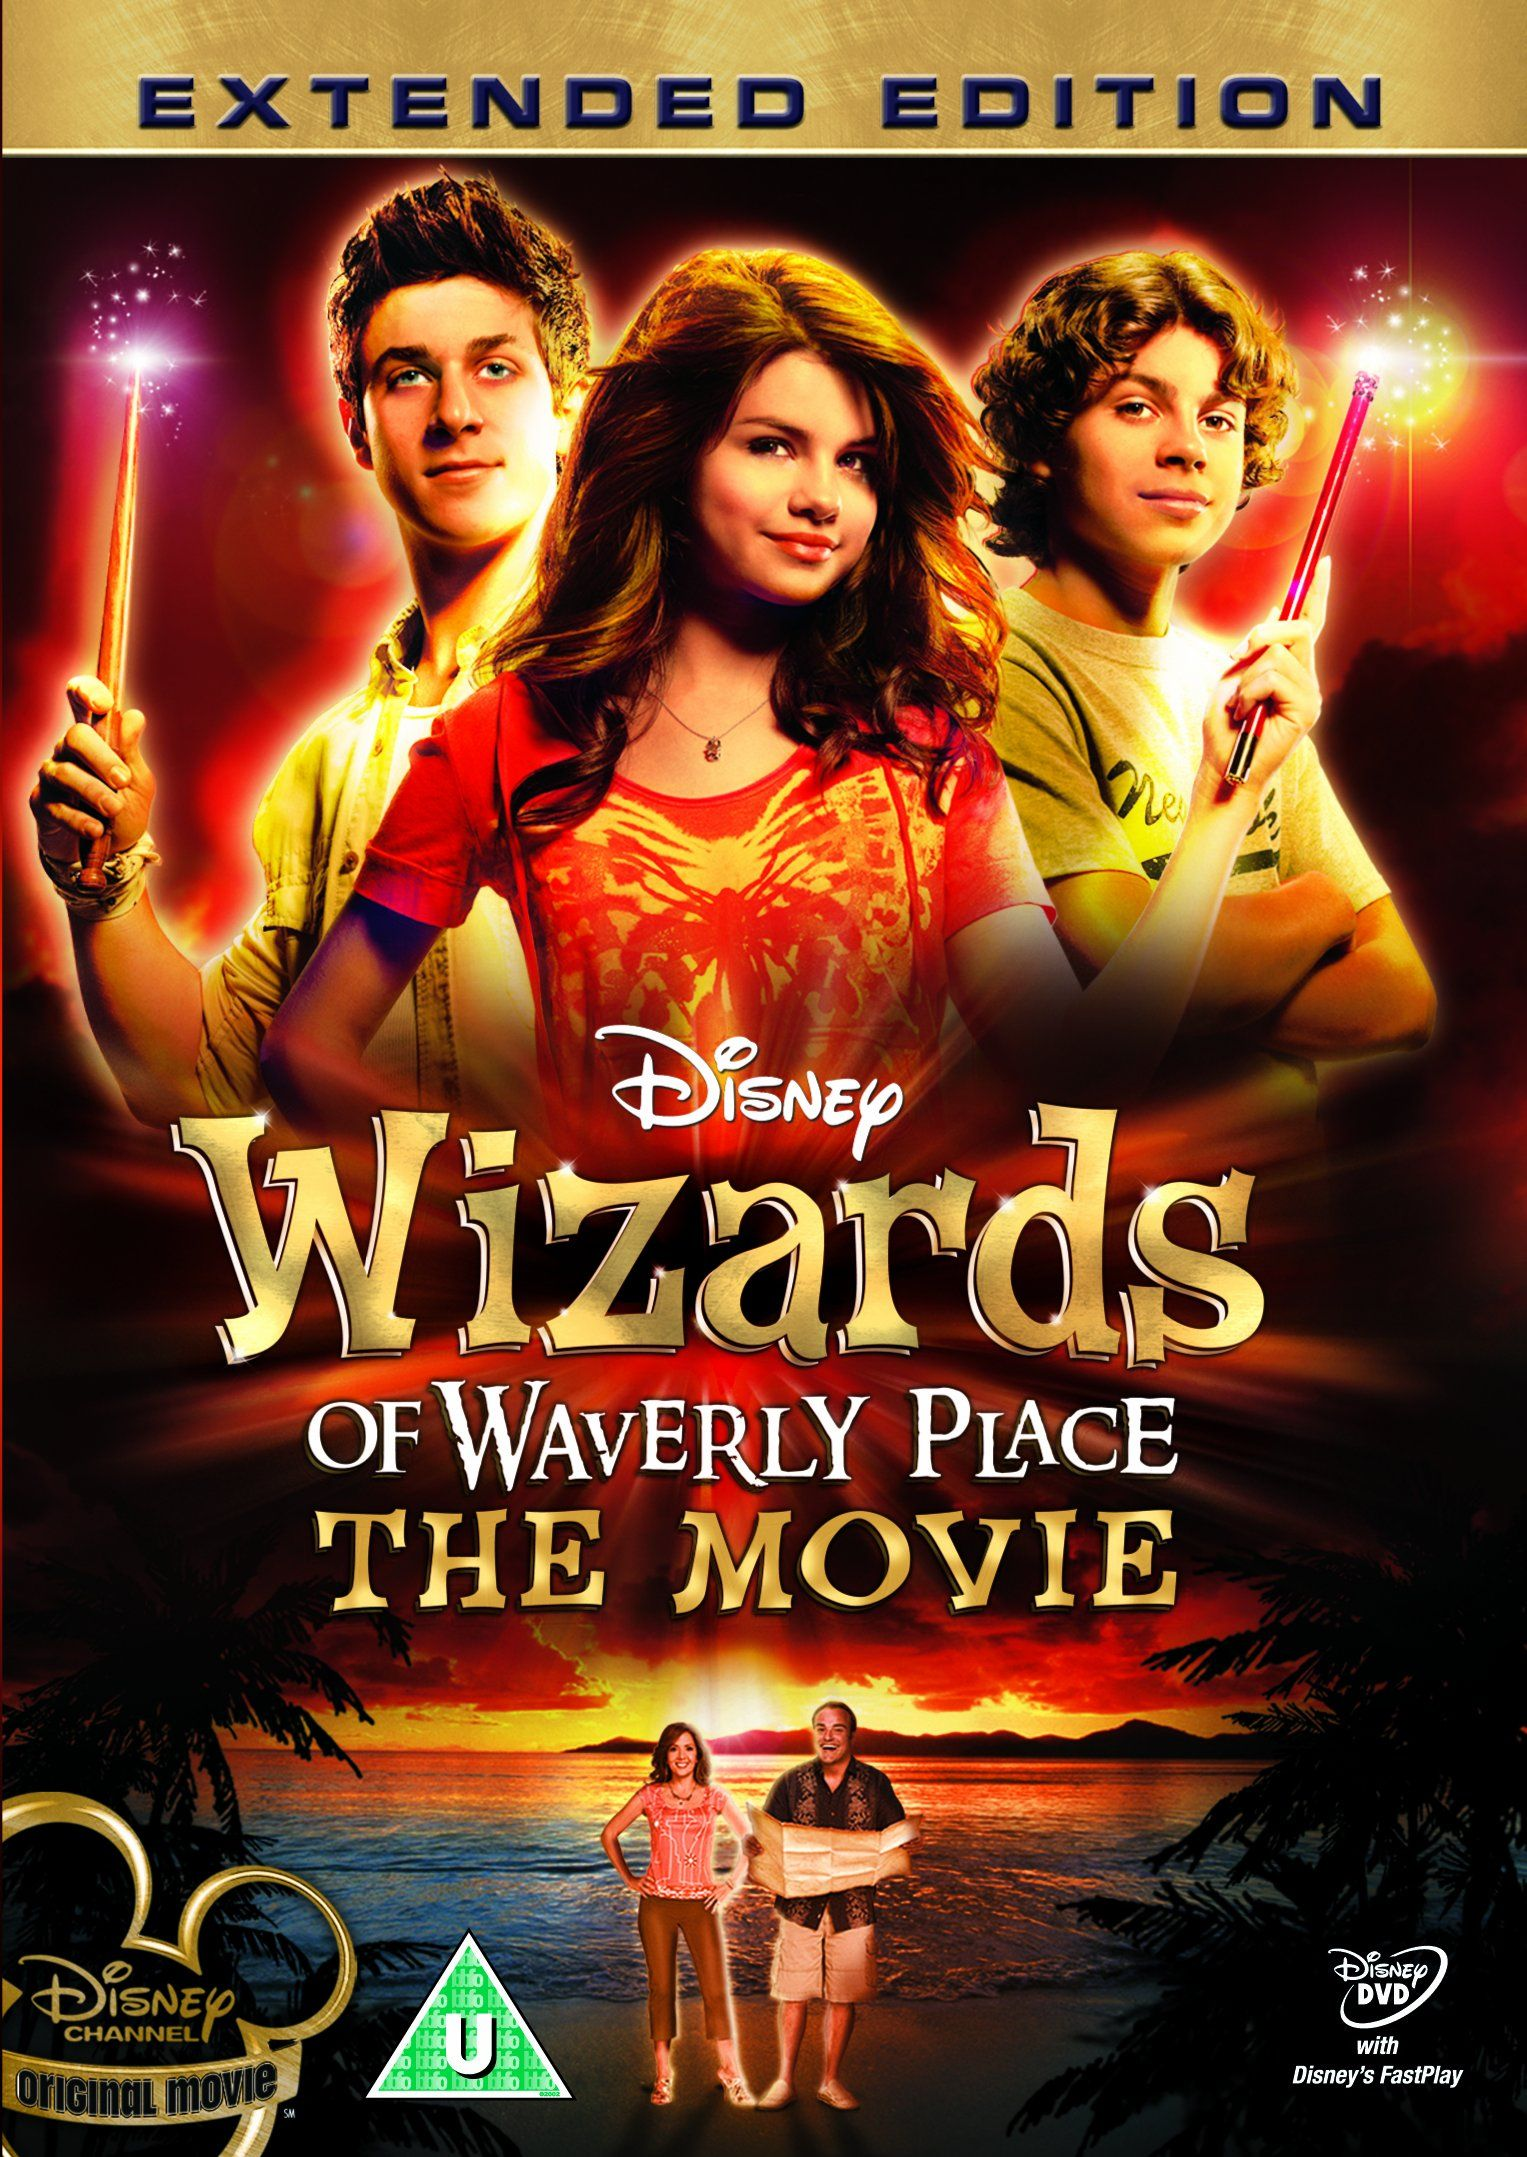 Wizards Of Waverly Place The Movie Reino Unido Dvd Place Waverly Wizards Movie Peliculas Viejas De Disney Pelicula Disney Channel Peliculas De Halloween